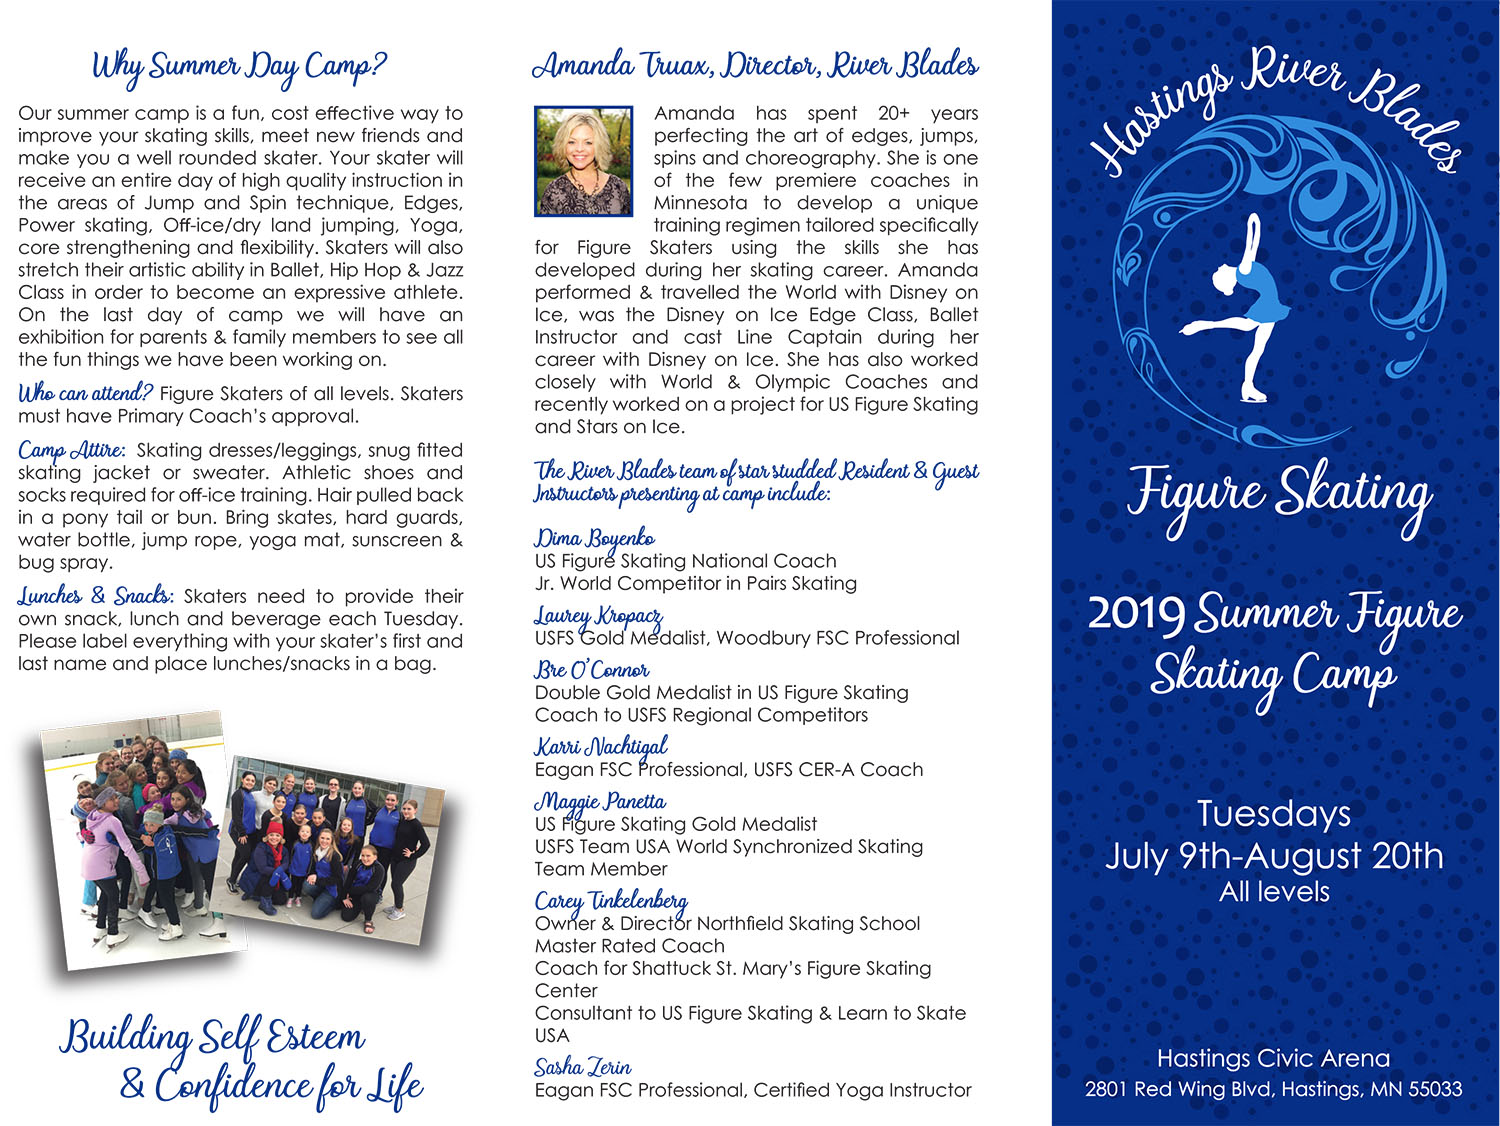 HRB Summer Camp Brochure-1.jpg